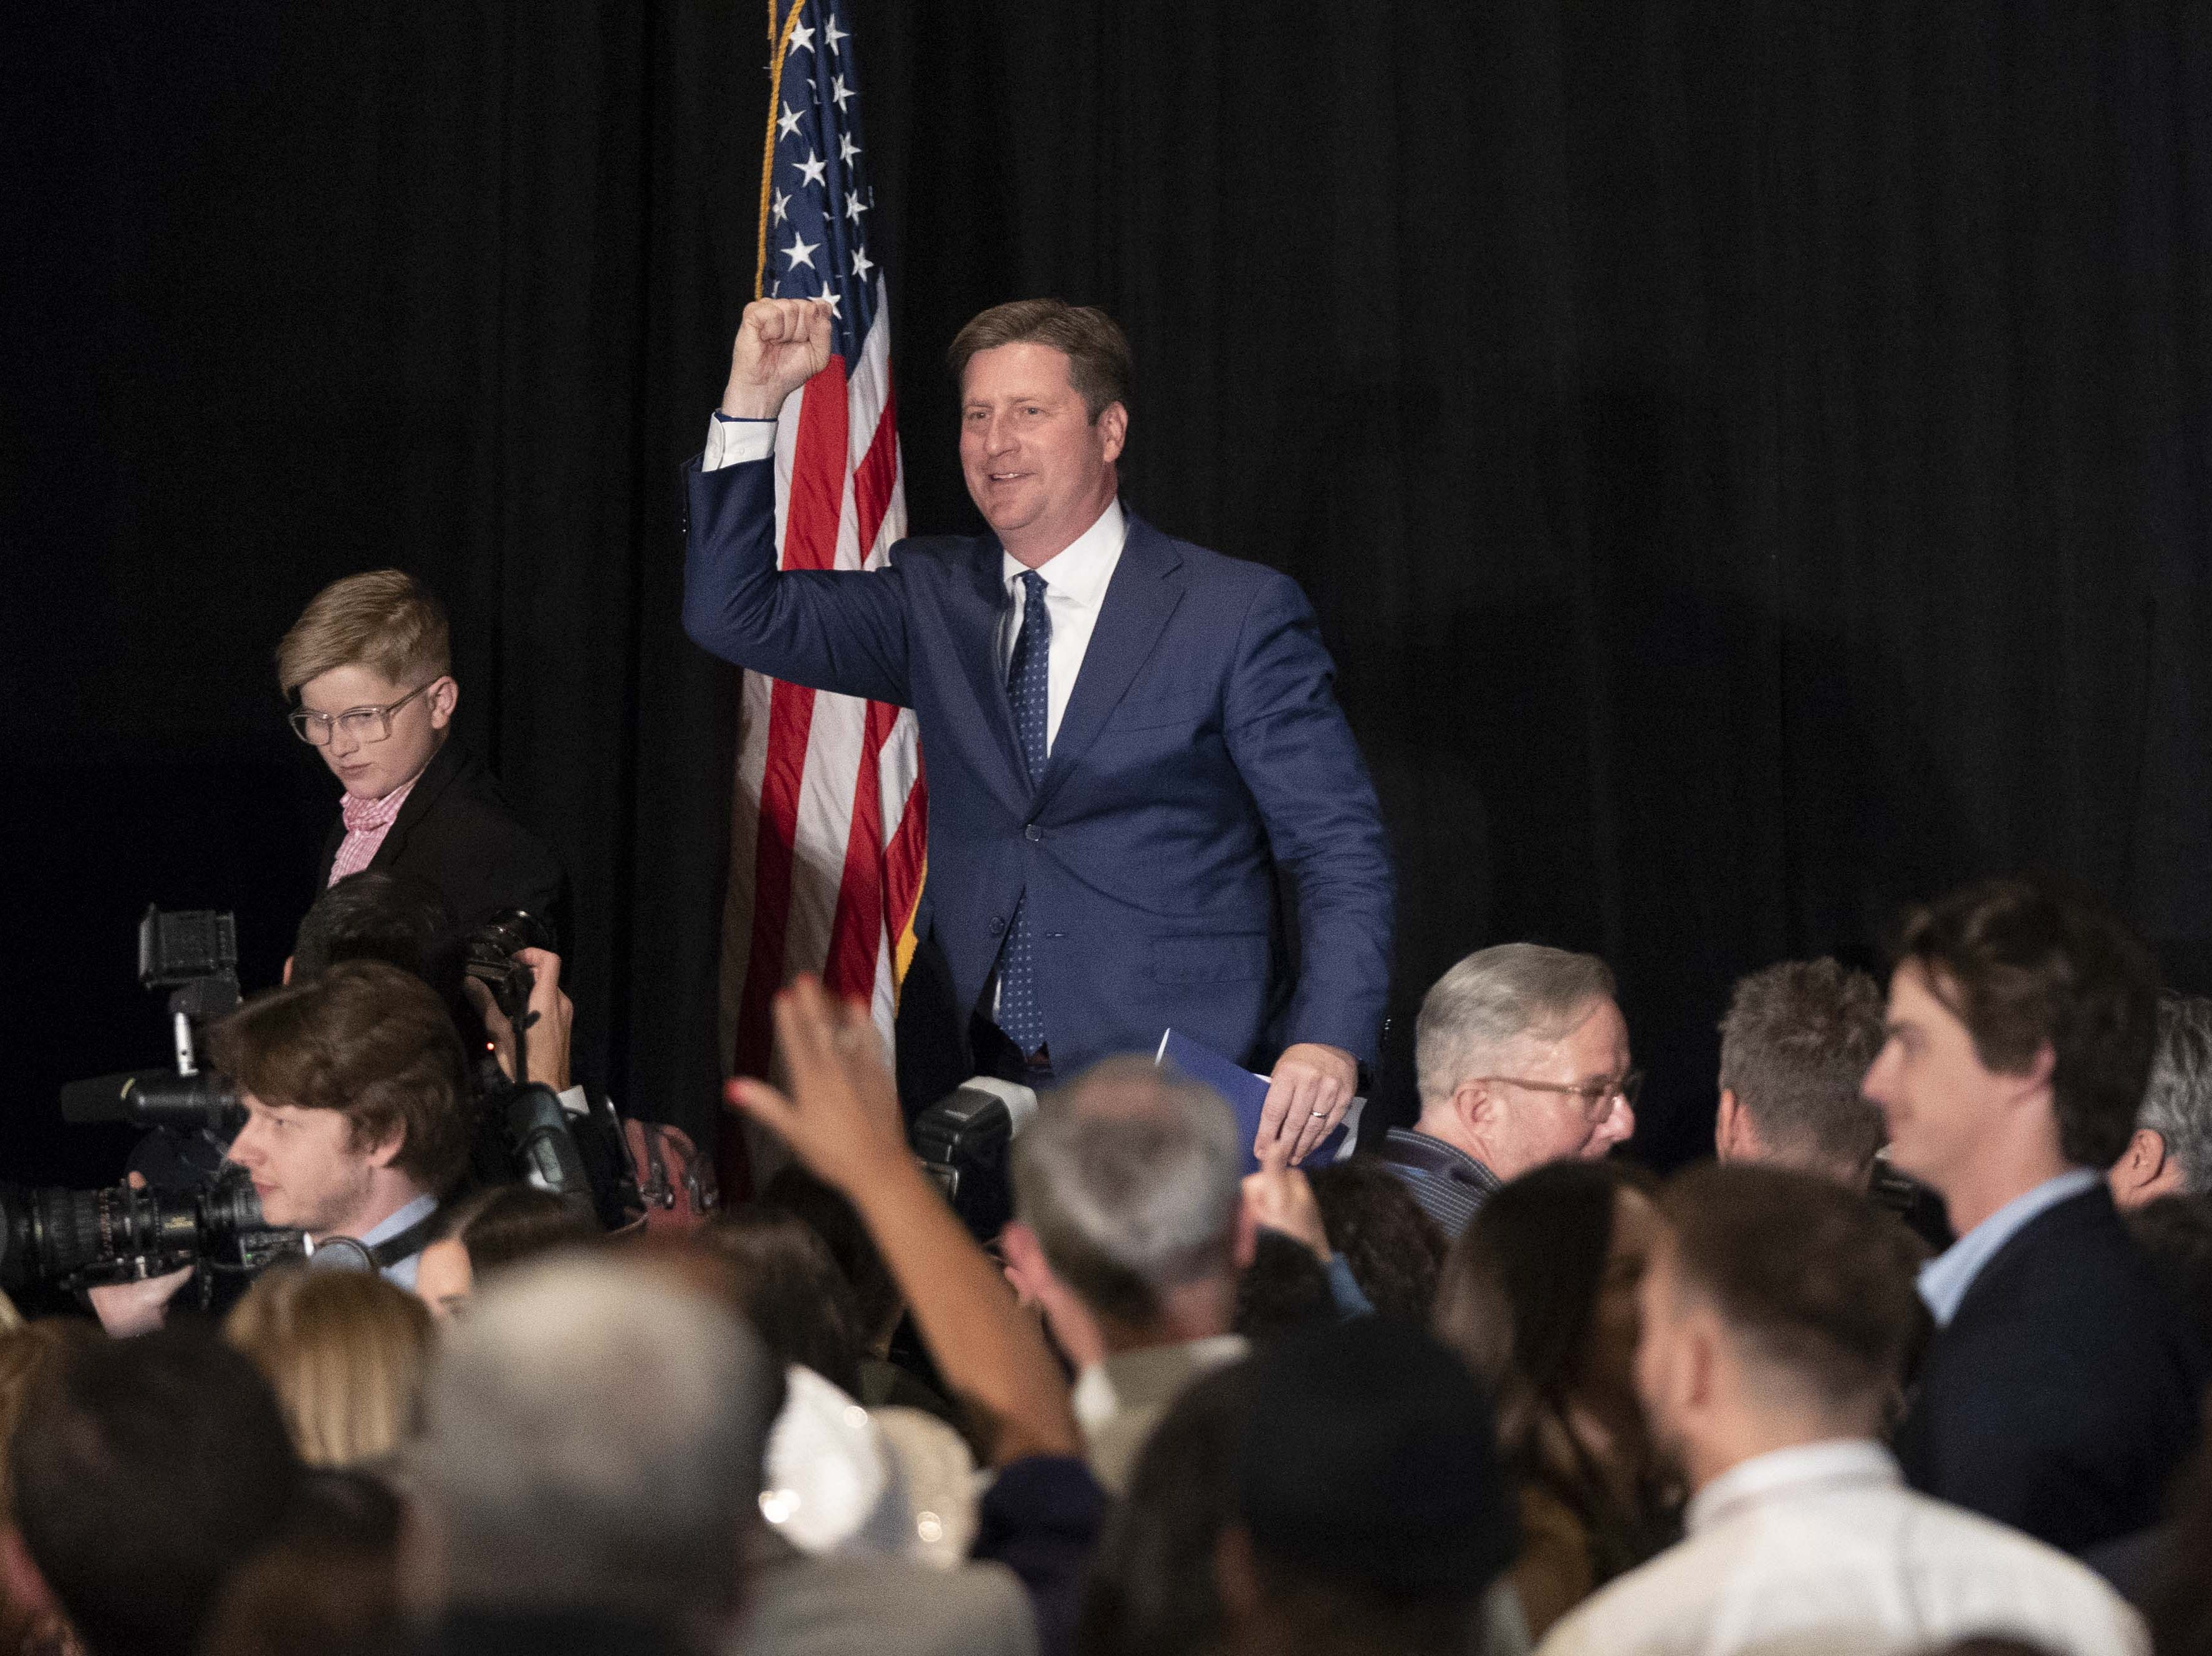 Greg Stanton, Democratic candidate for U.S. Representative of Arizona's 9th Congressional District gives, his victory speech along with his family at the Renaissance Phoenix Downtown Hotel on Nov. 6, 2018.